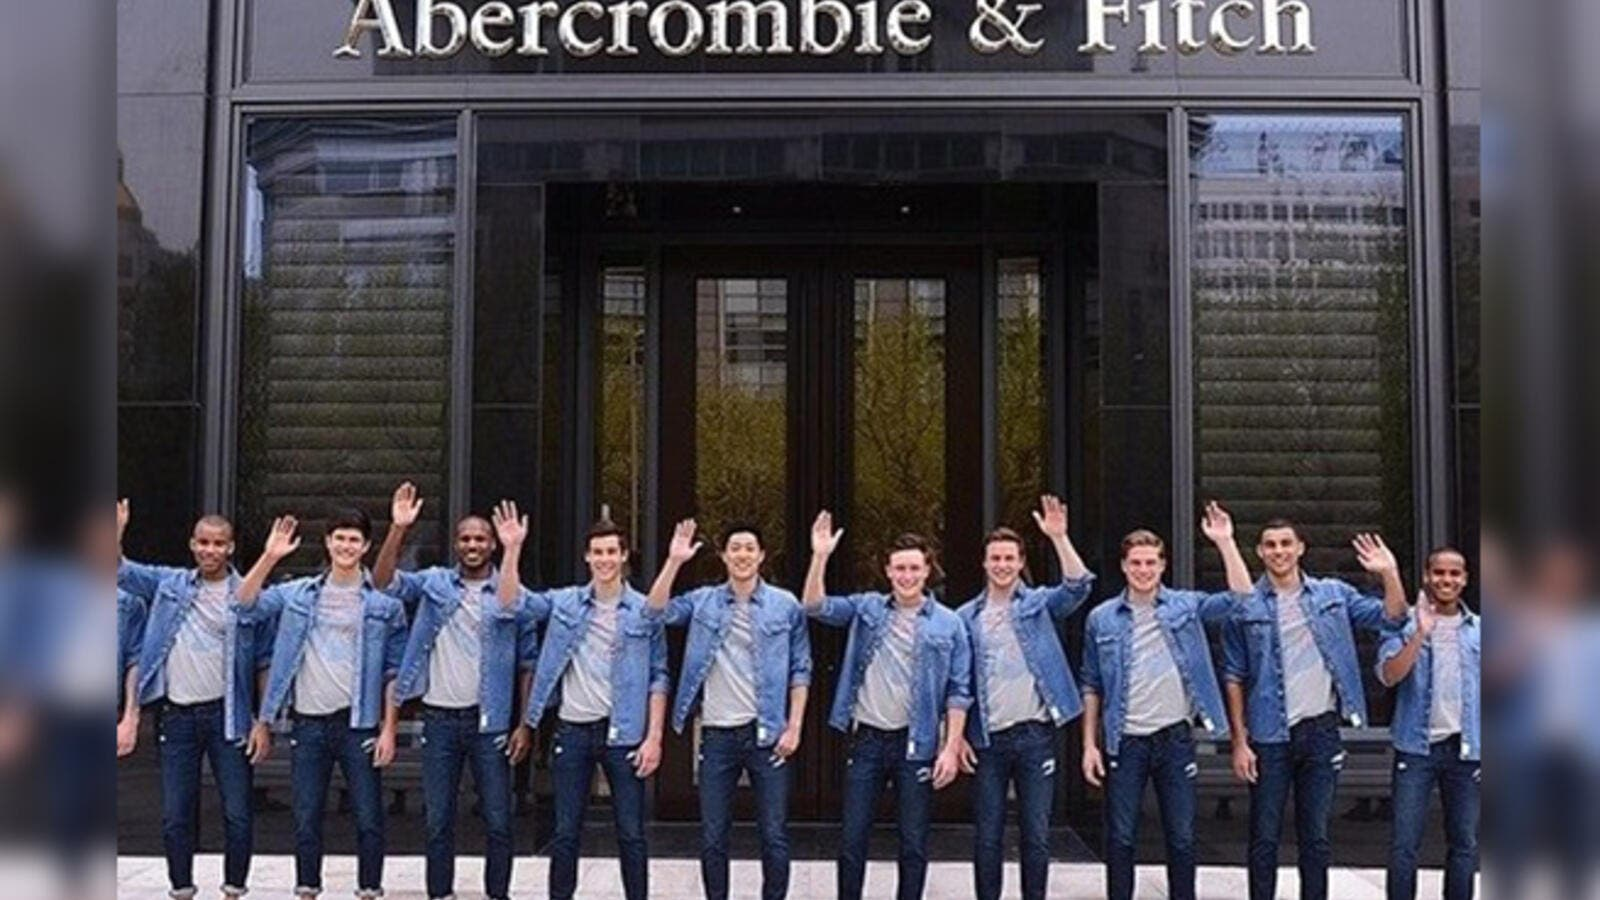 In 2013, Majid Al Futtaim signed a joint venture agreement with Abercrombie for stores in the UAE and Qatar.  (Abercrombie)